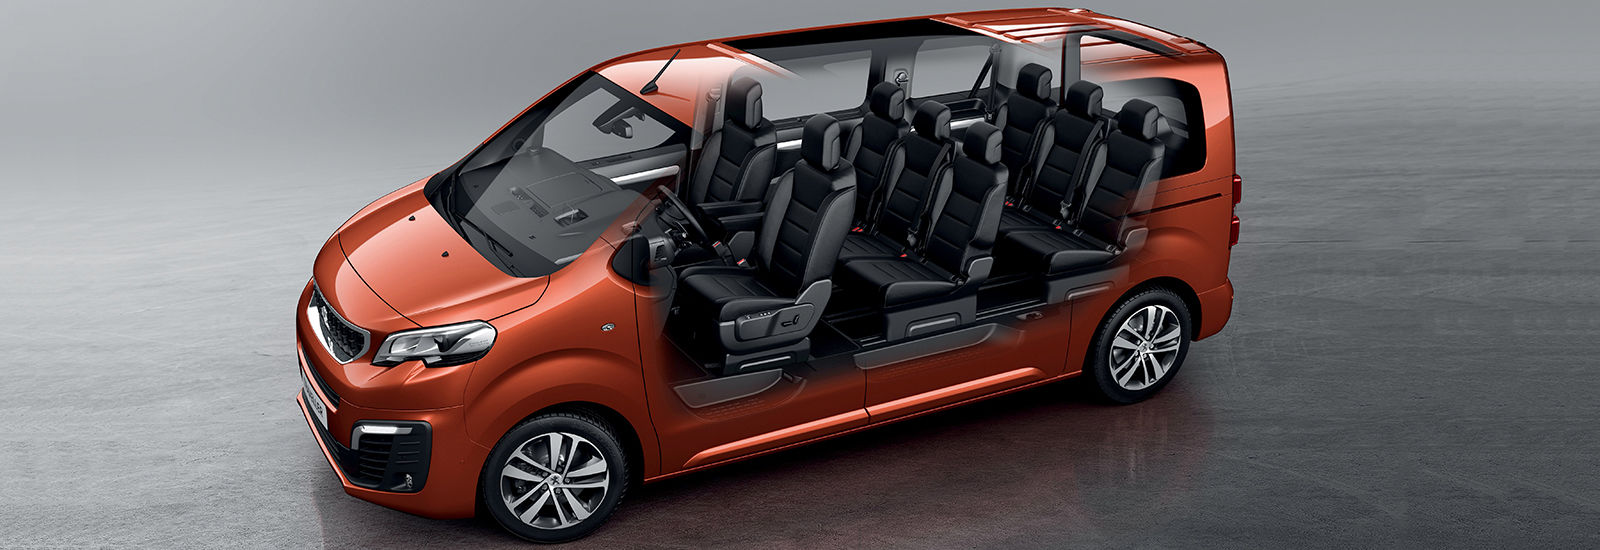 Peugeot Traveller price, specs and release date | carwow